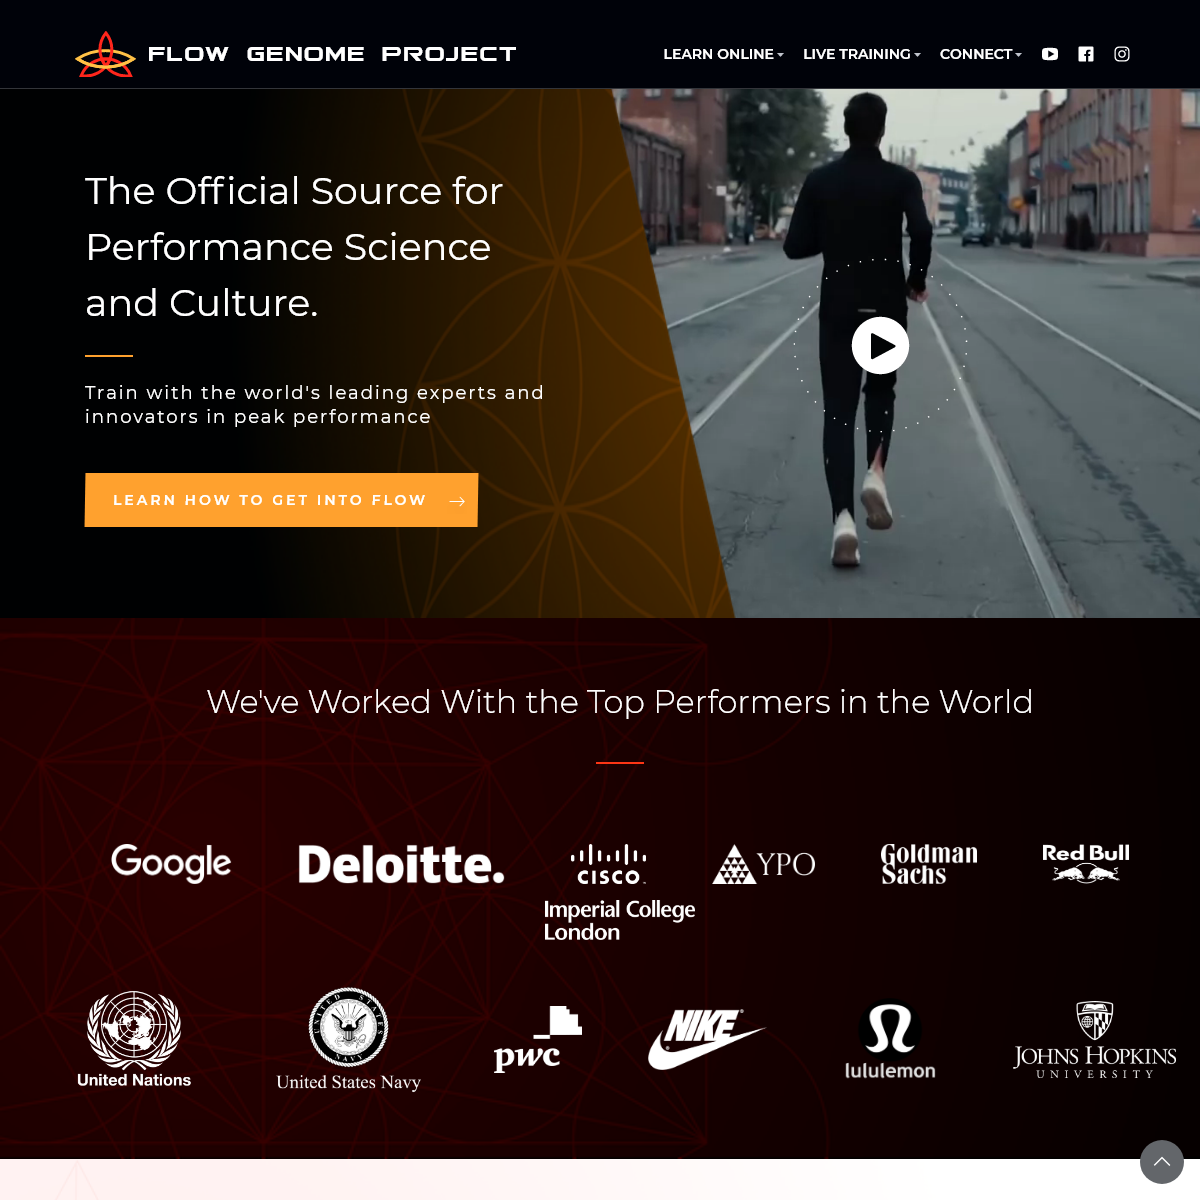 Flow Genome Project- Unlocking The Next Level Of Human Performance